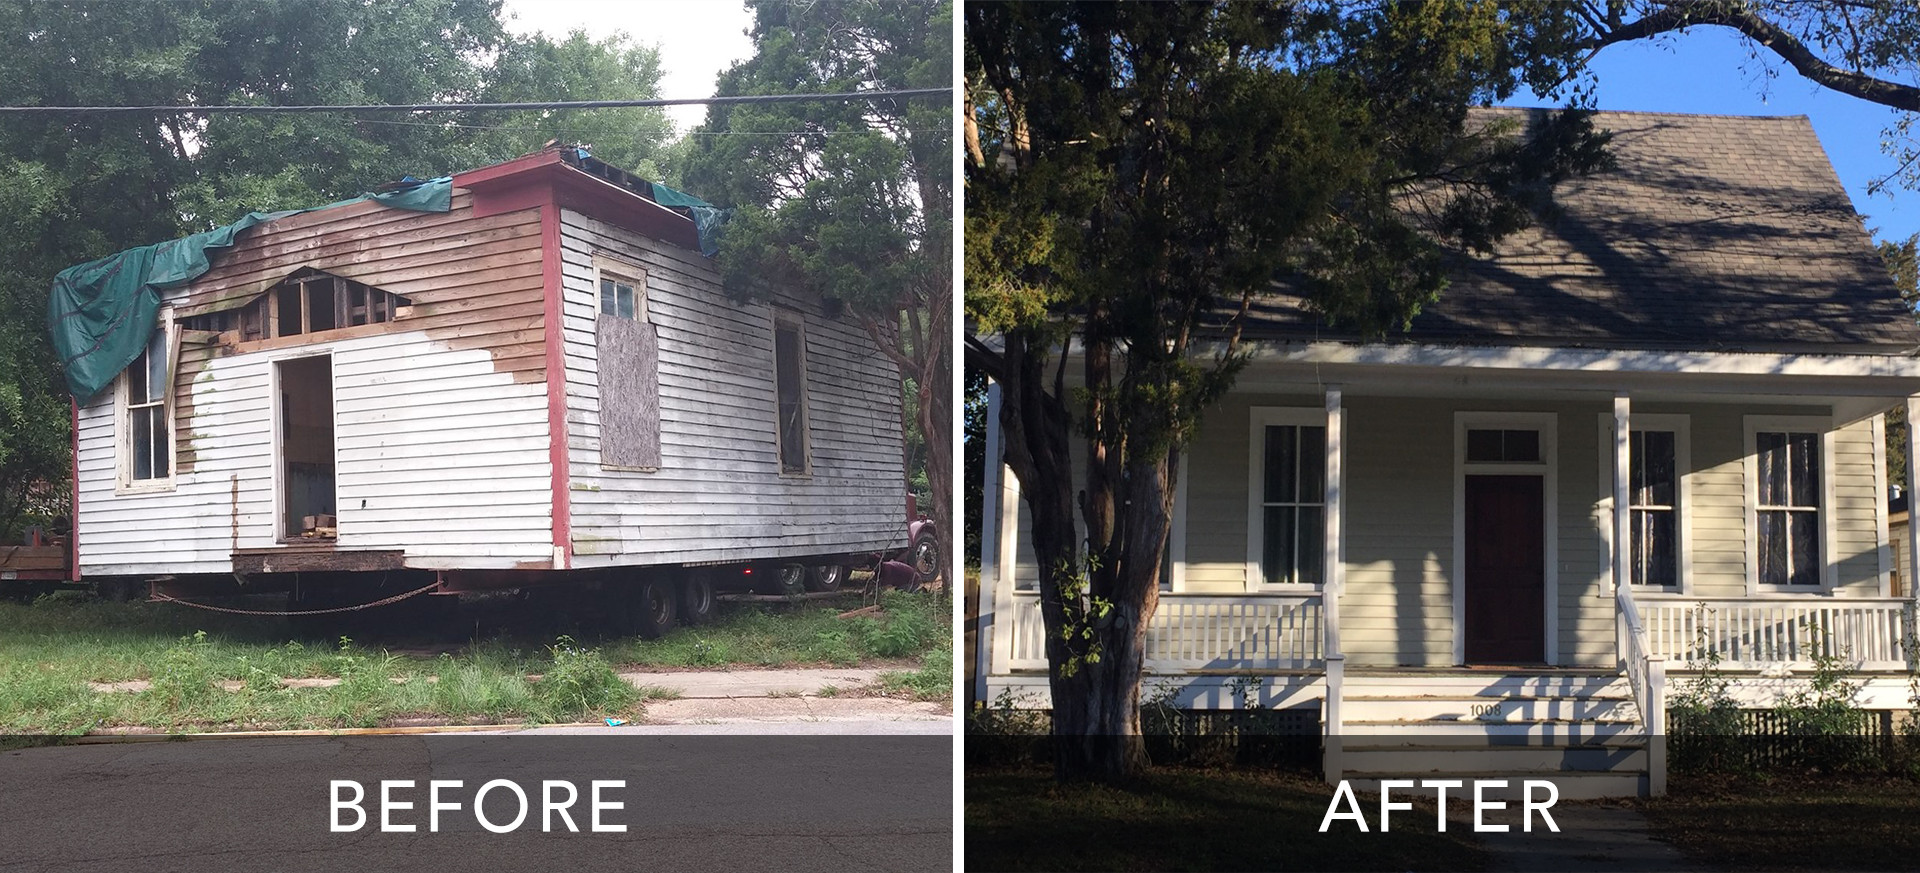 RM_Website_BeforeAfter_Slide_1008Texas.j